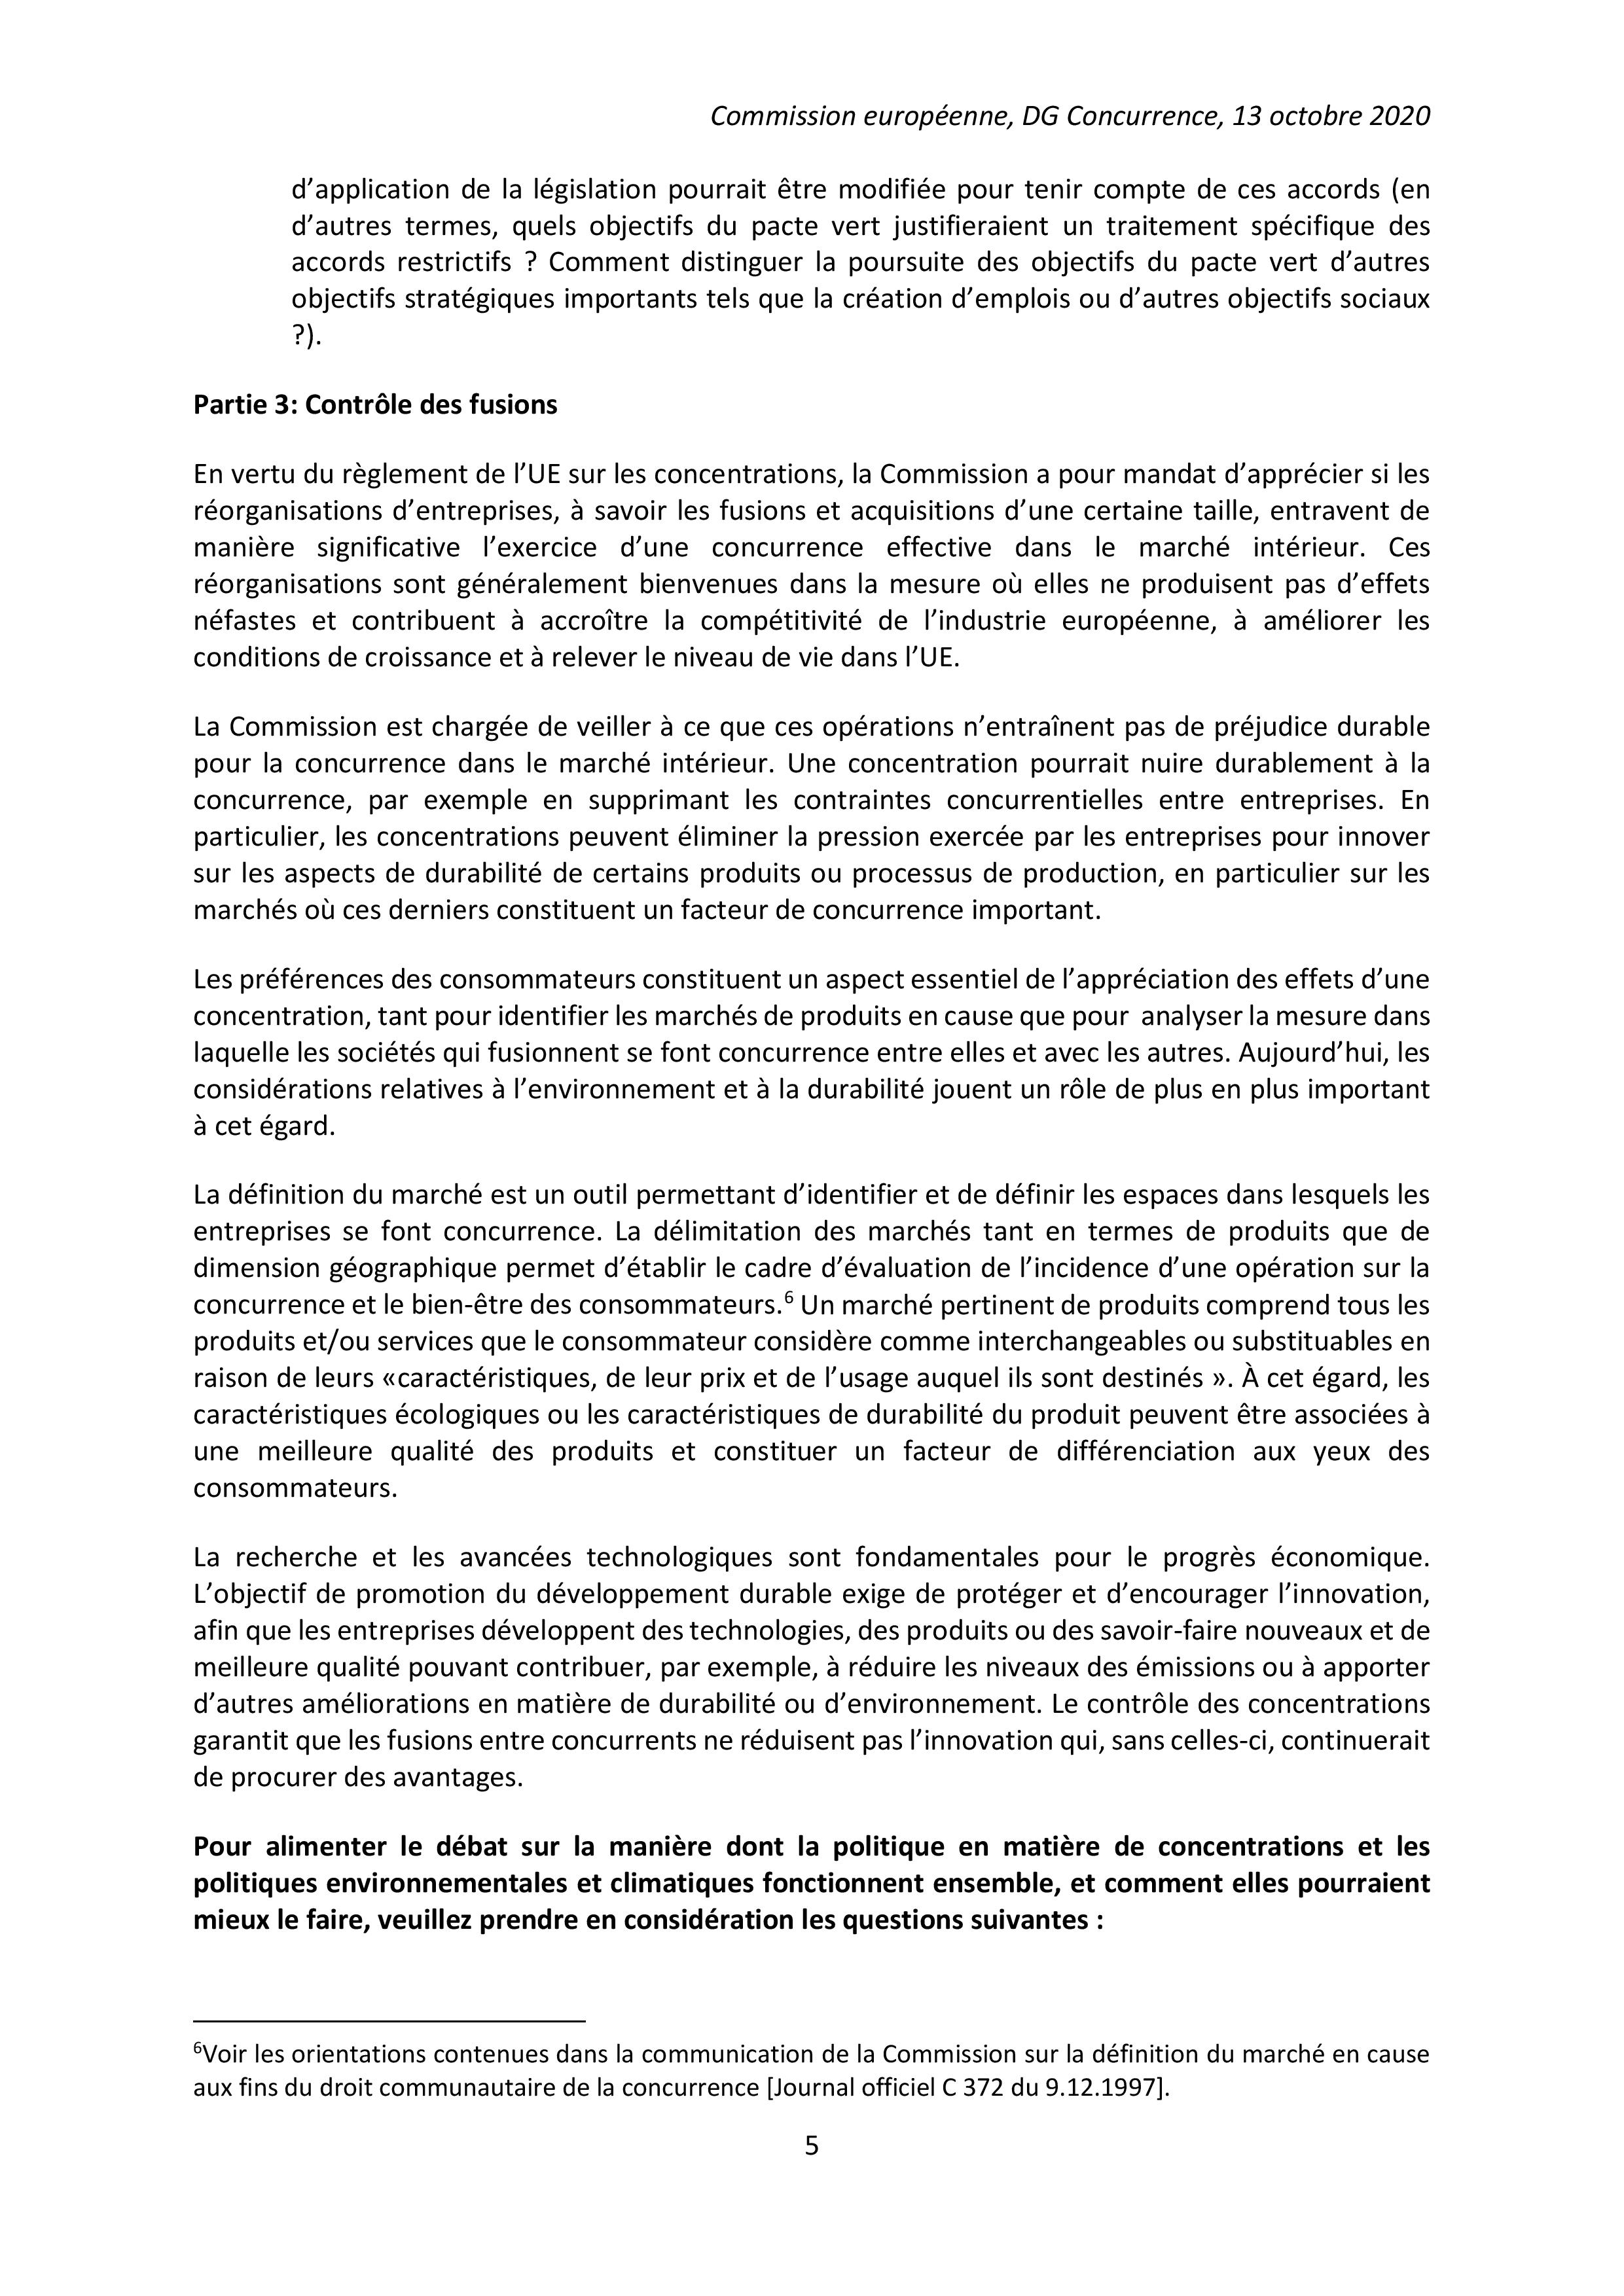 call_for_contributions_fr-page-005